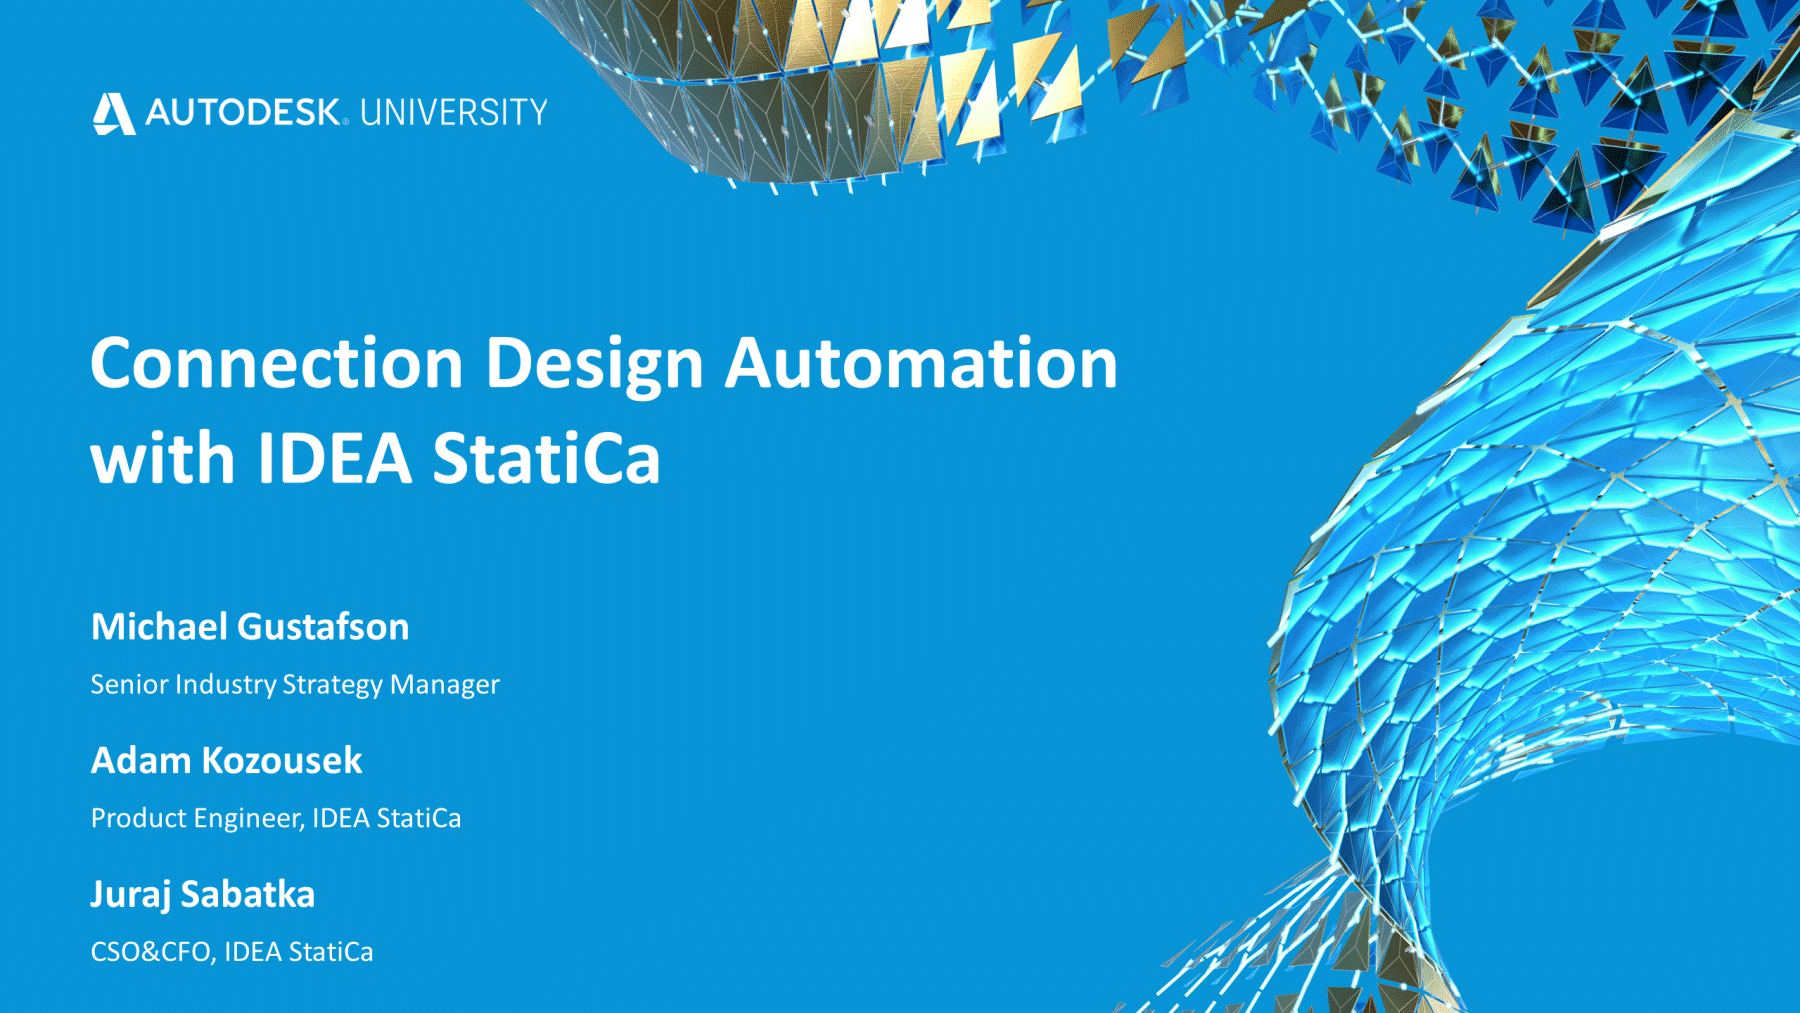 Connection Design Automation with IDEA StatiCa and Autodesk